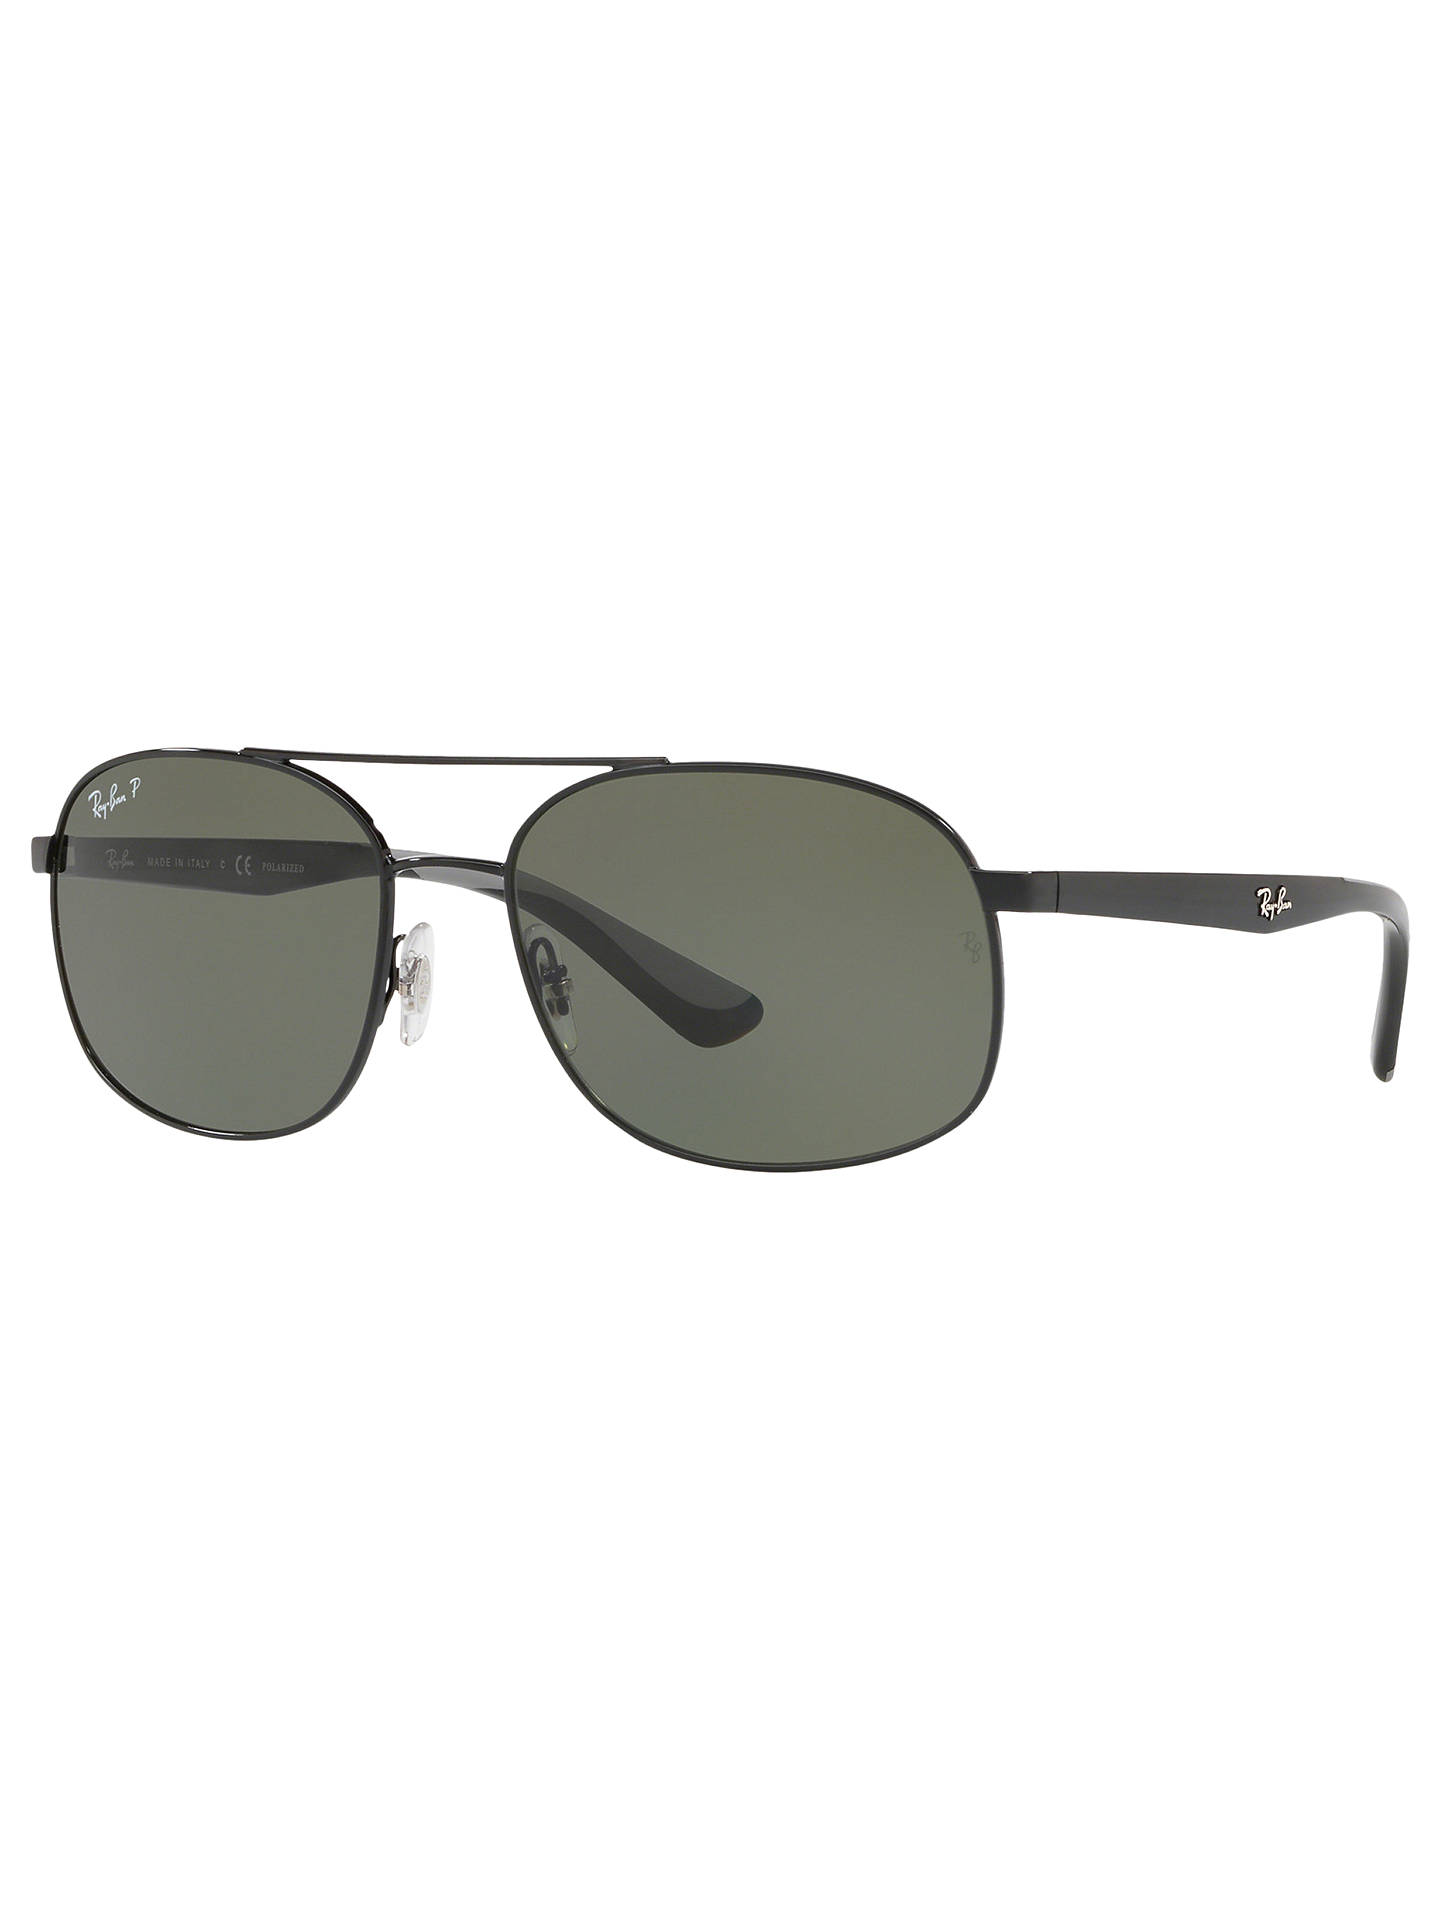 59bb60be5d Ray-Ban RB3593 Unisex Polarised Oval Sunglasses at John Lewis   Partners